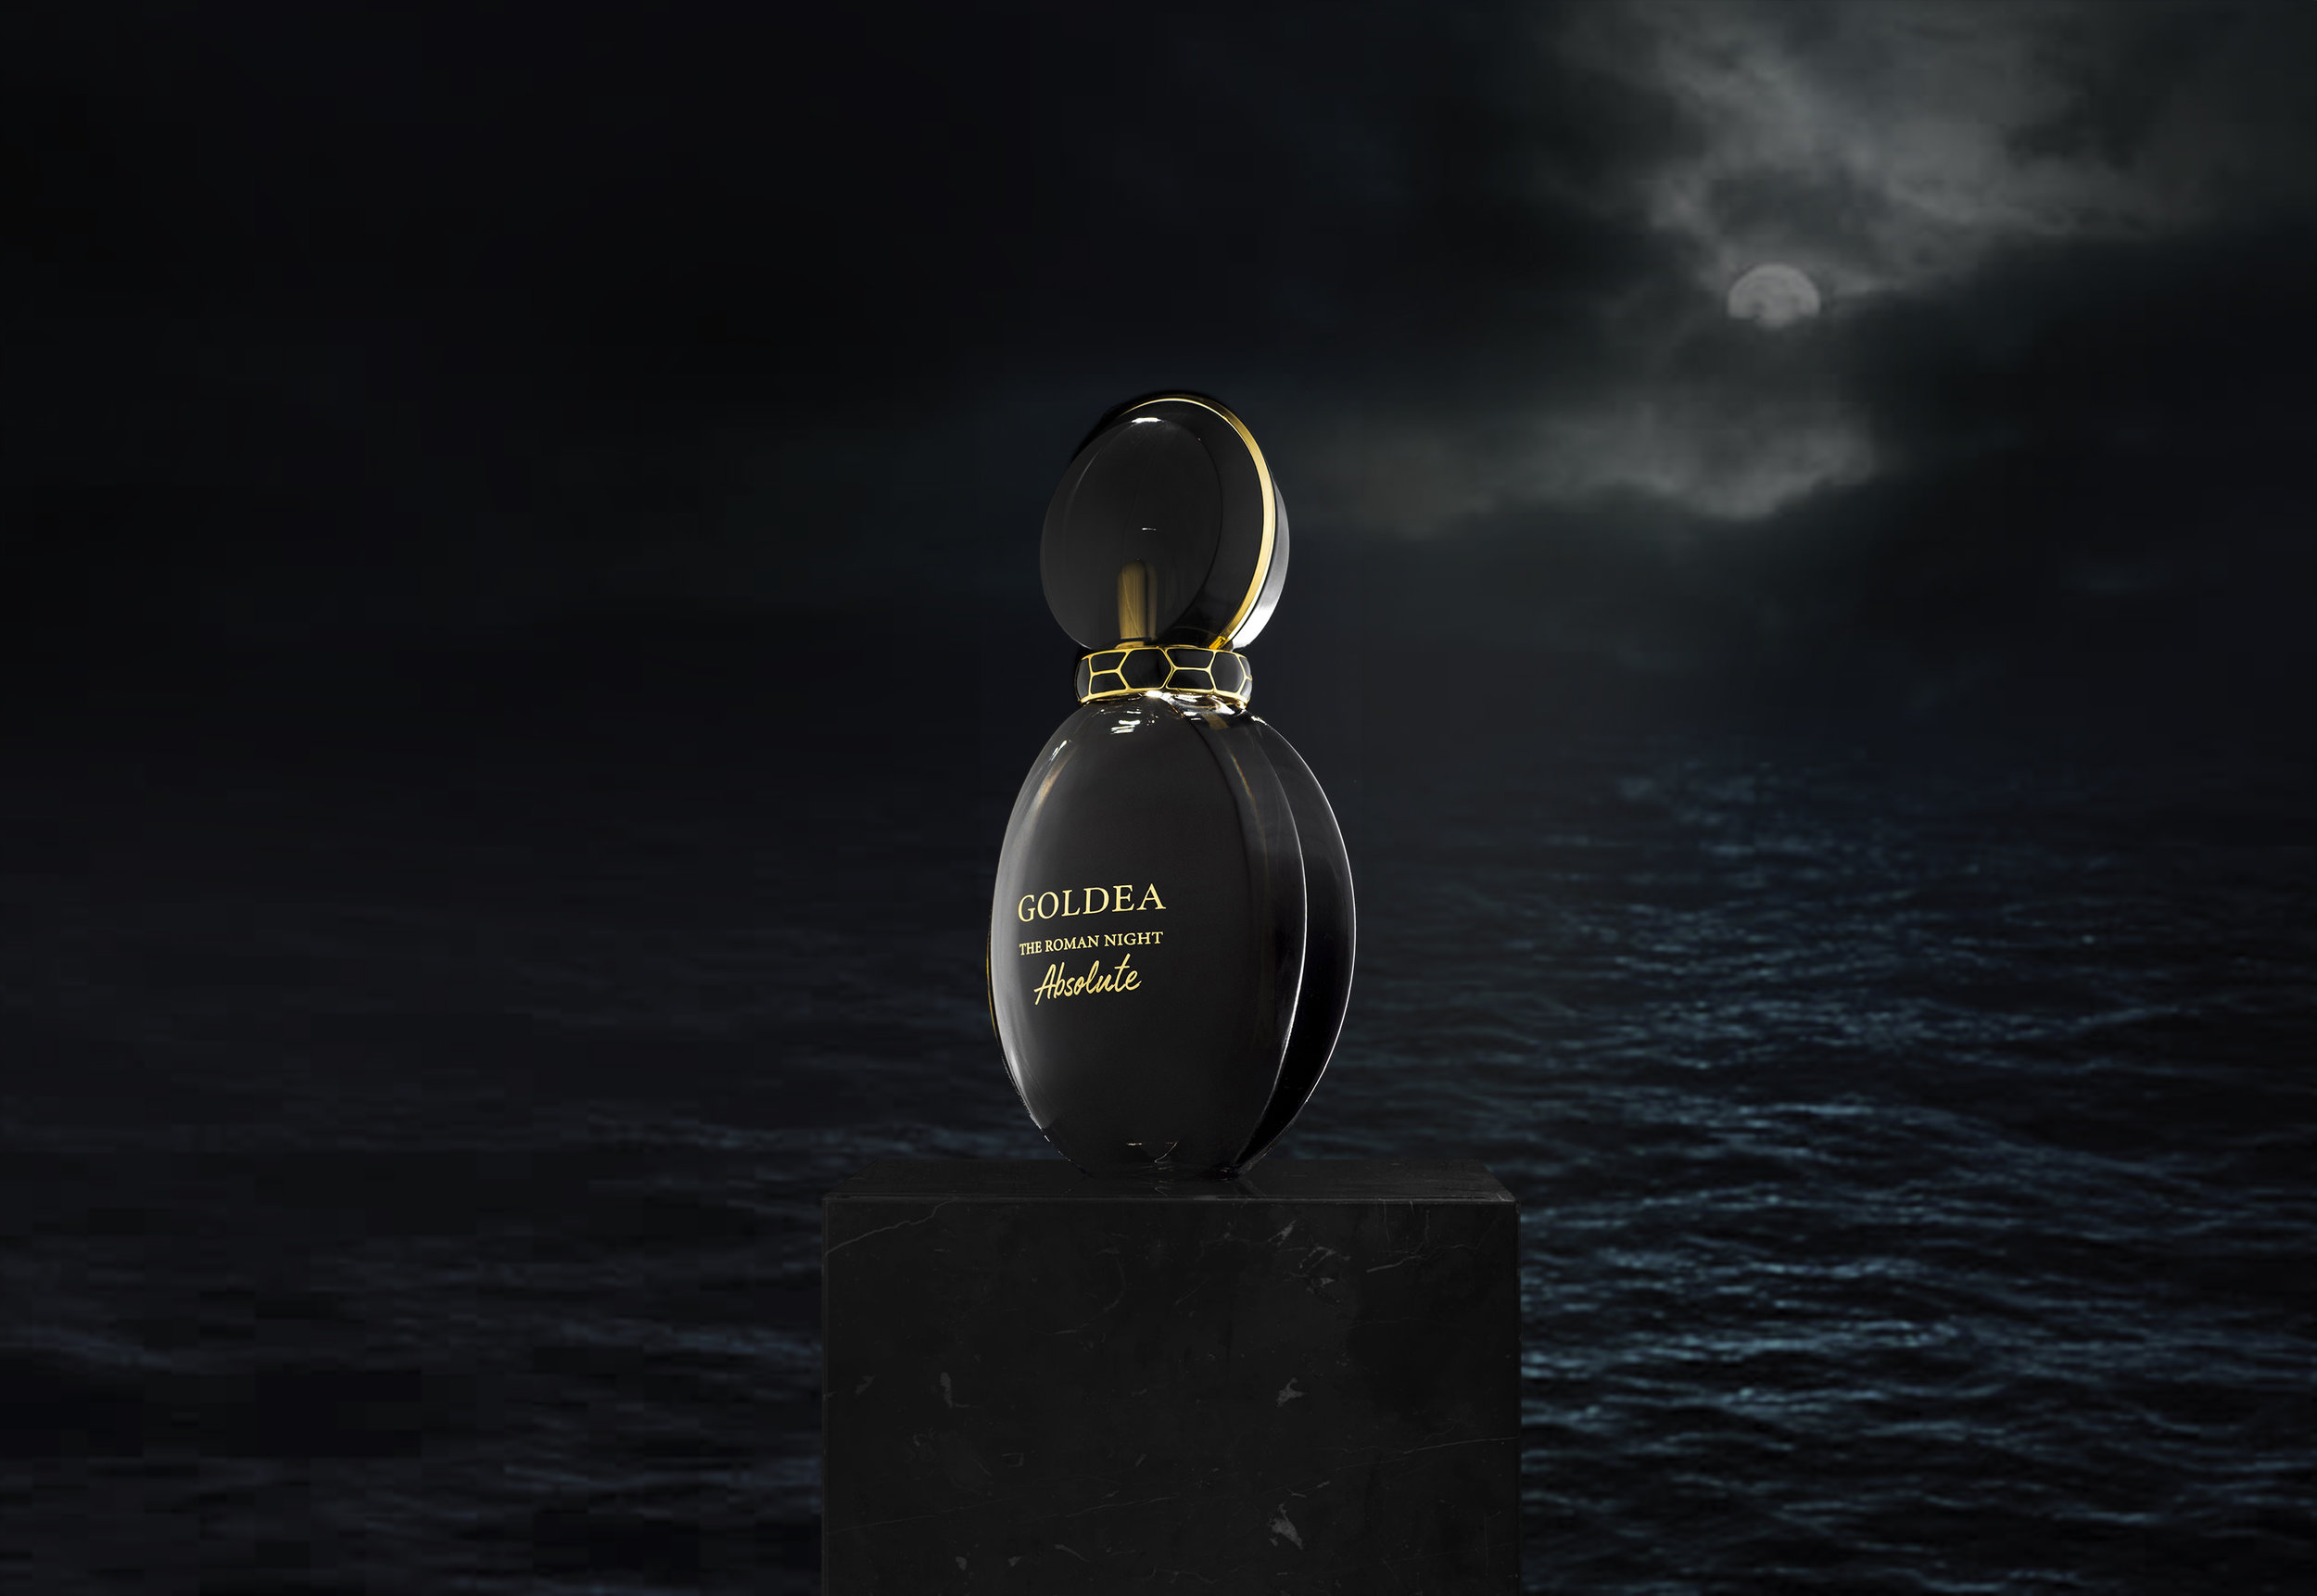 BVLGARI Goldea The Roman Night Perfume - photo by Andrew Werner.jpg